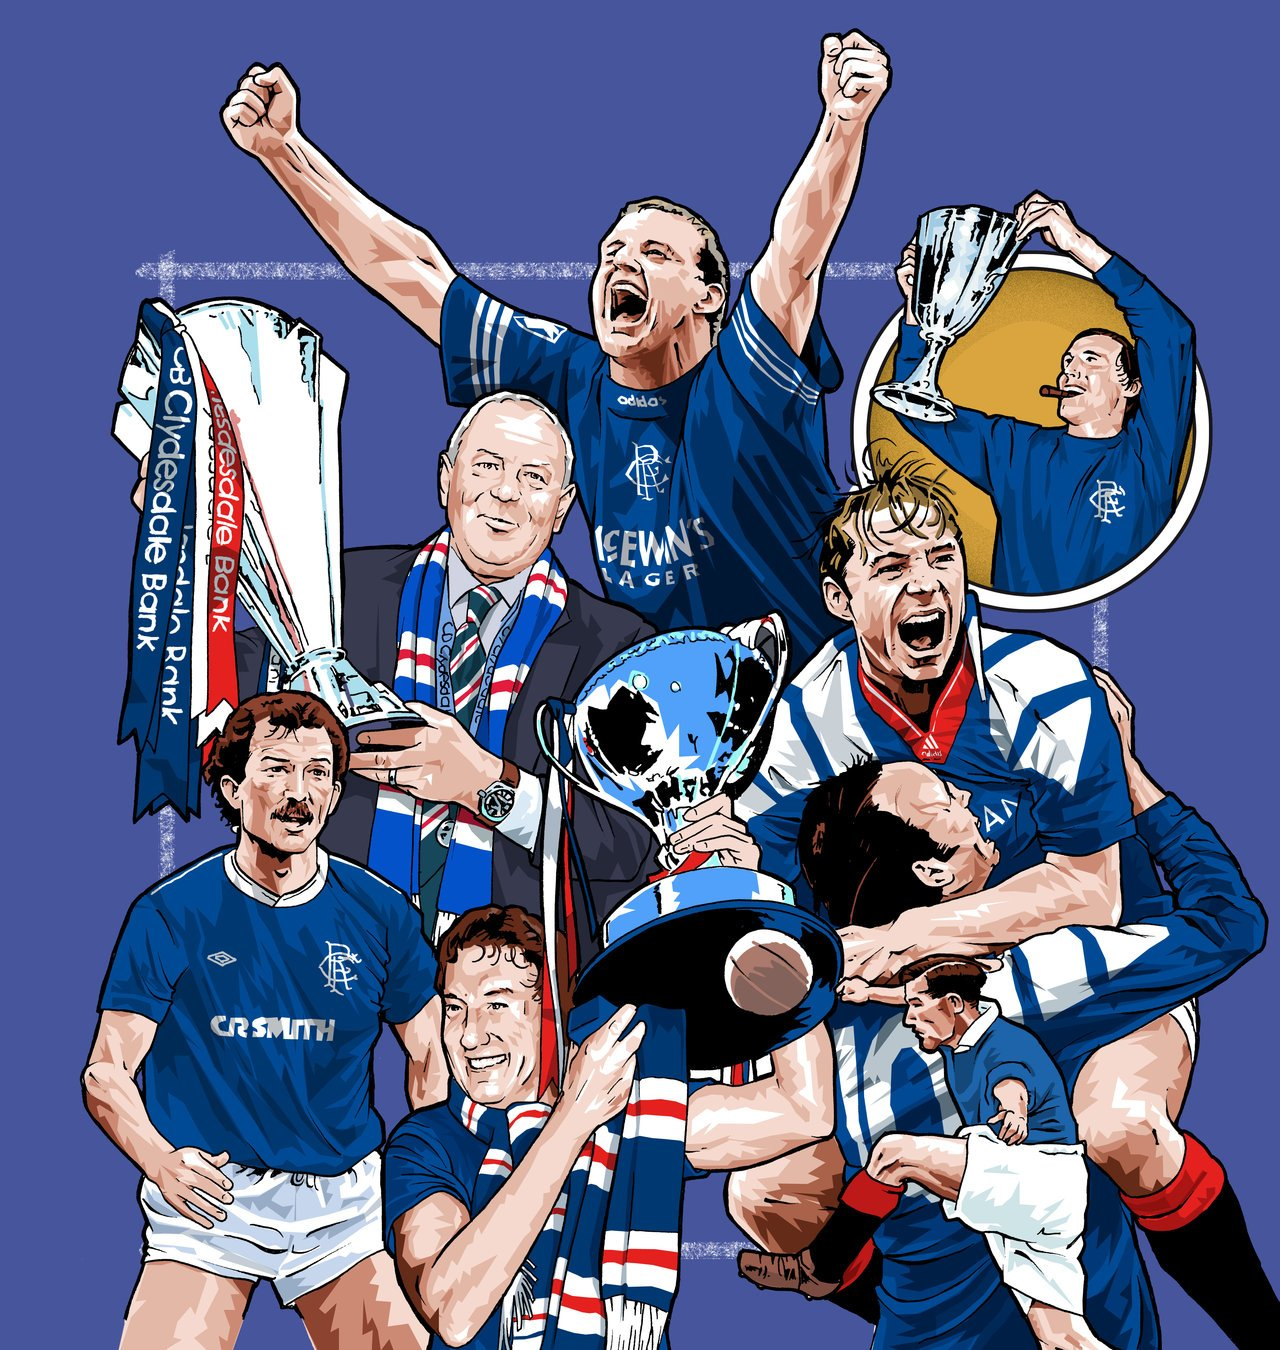 Glasgow Rangers Book Cover By Chegg69 On Deviantart 1280x1350